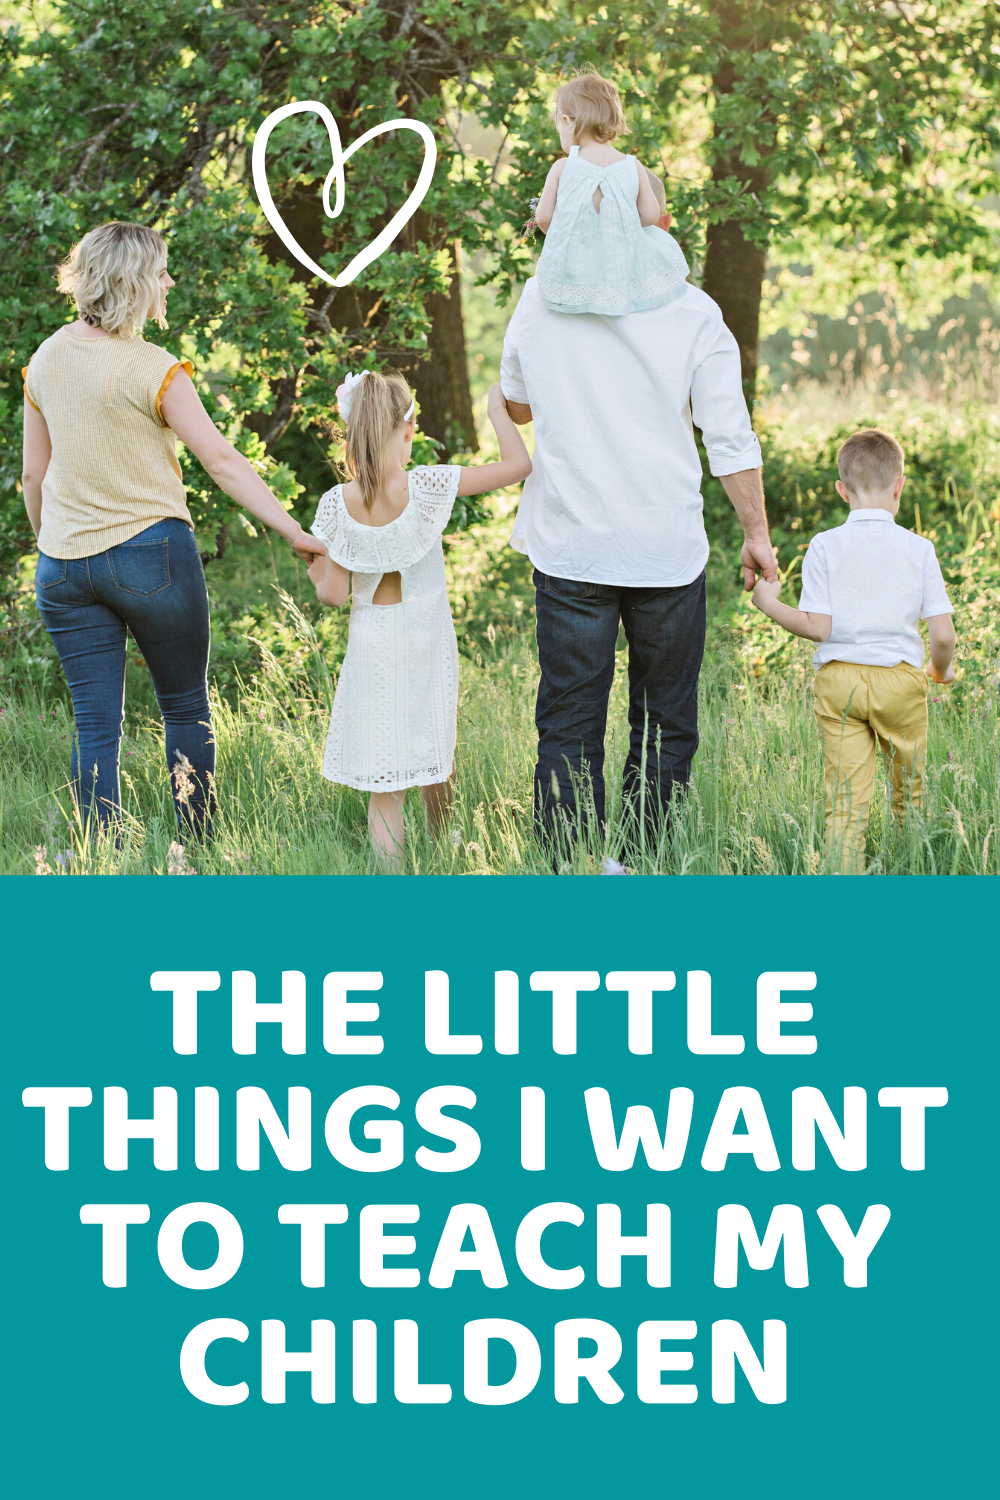 The Little Things I Want To Teach My Children - 10 life lessons